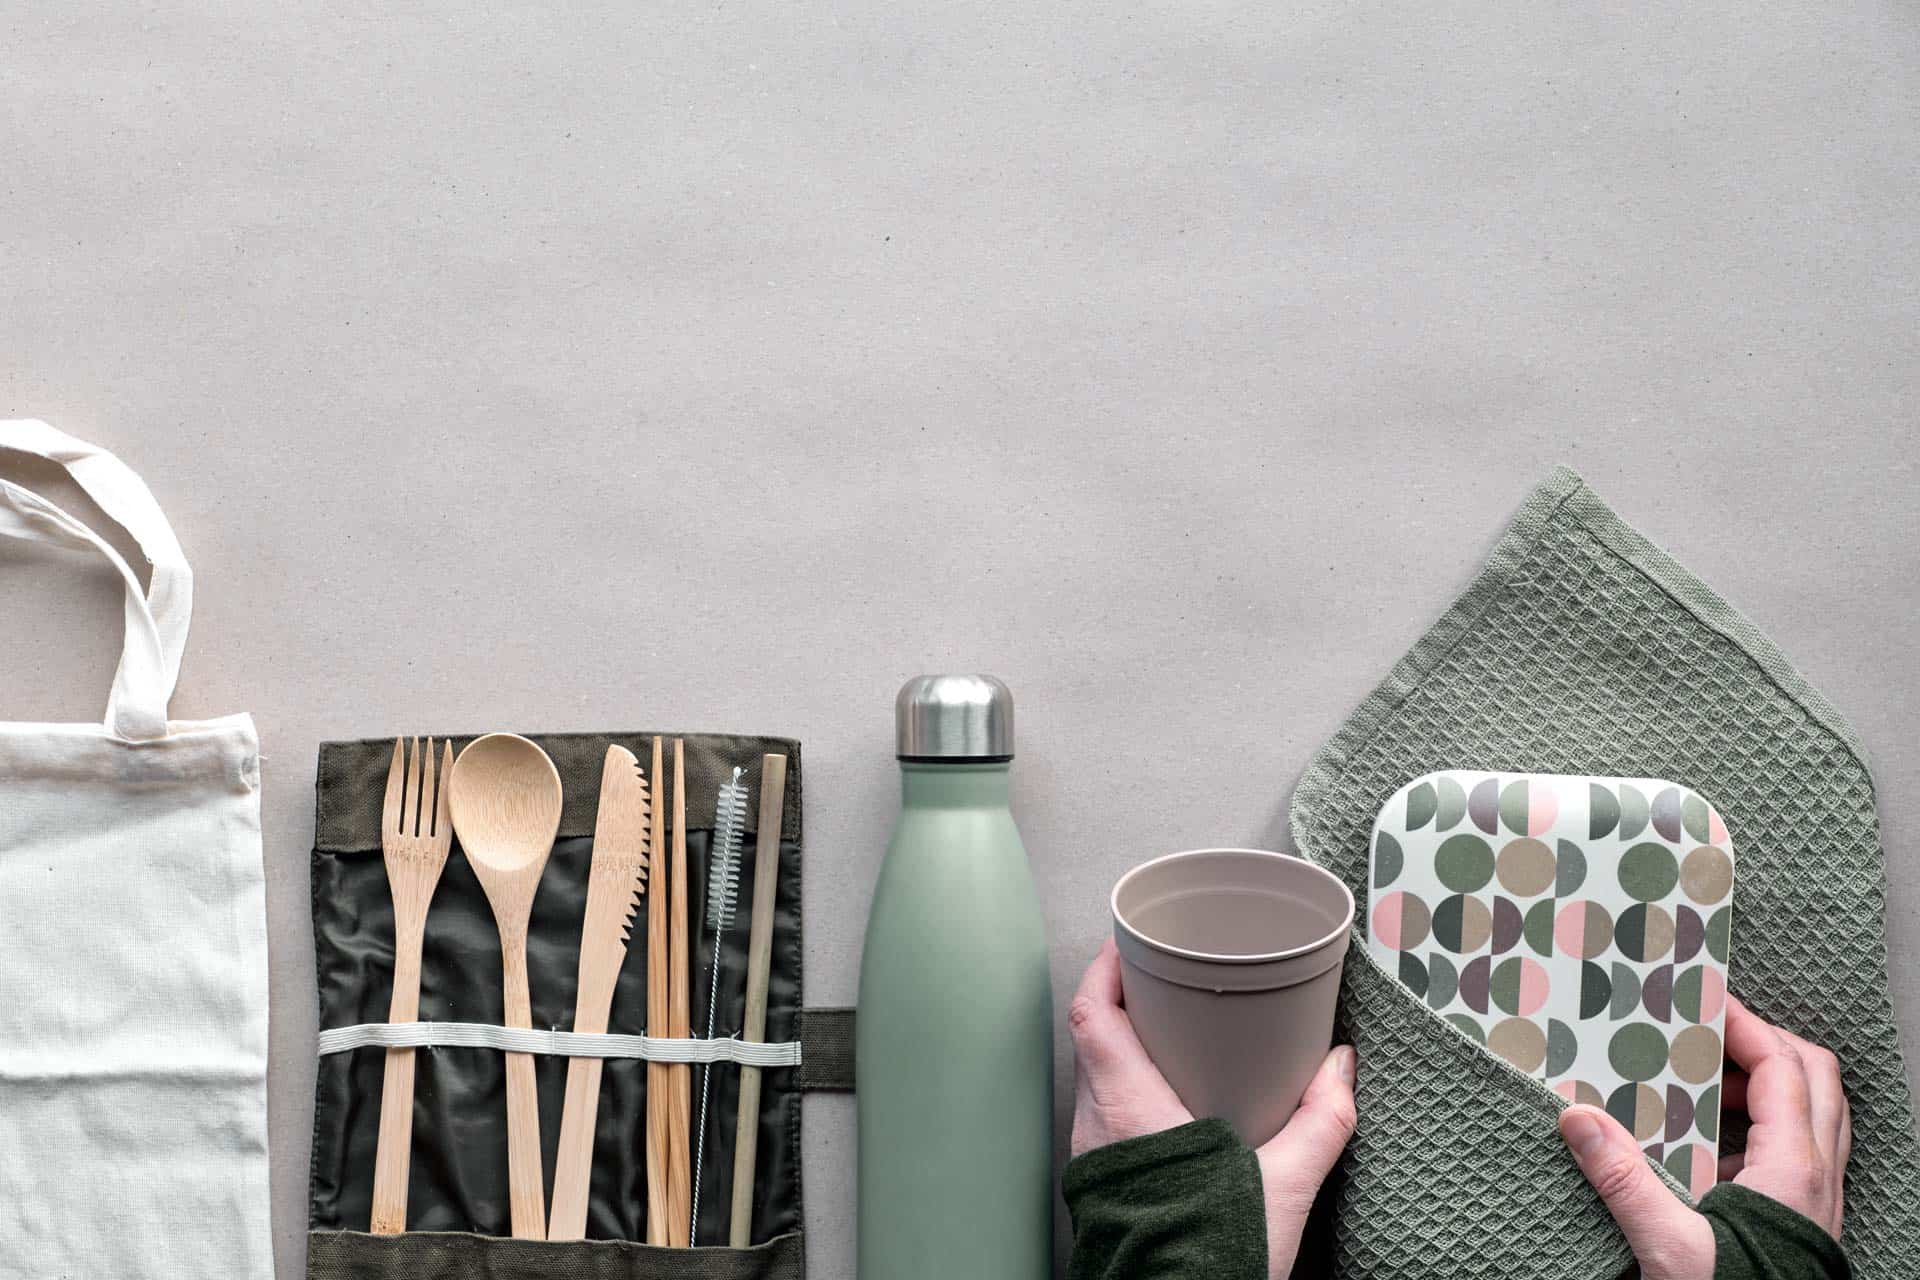 Flatlay of low impact living products - white tote bag, wood cutlery, reusable bottle